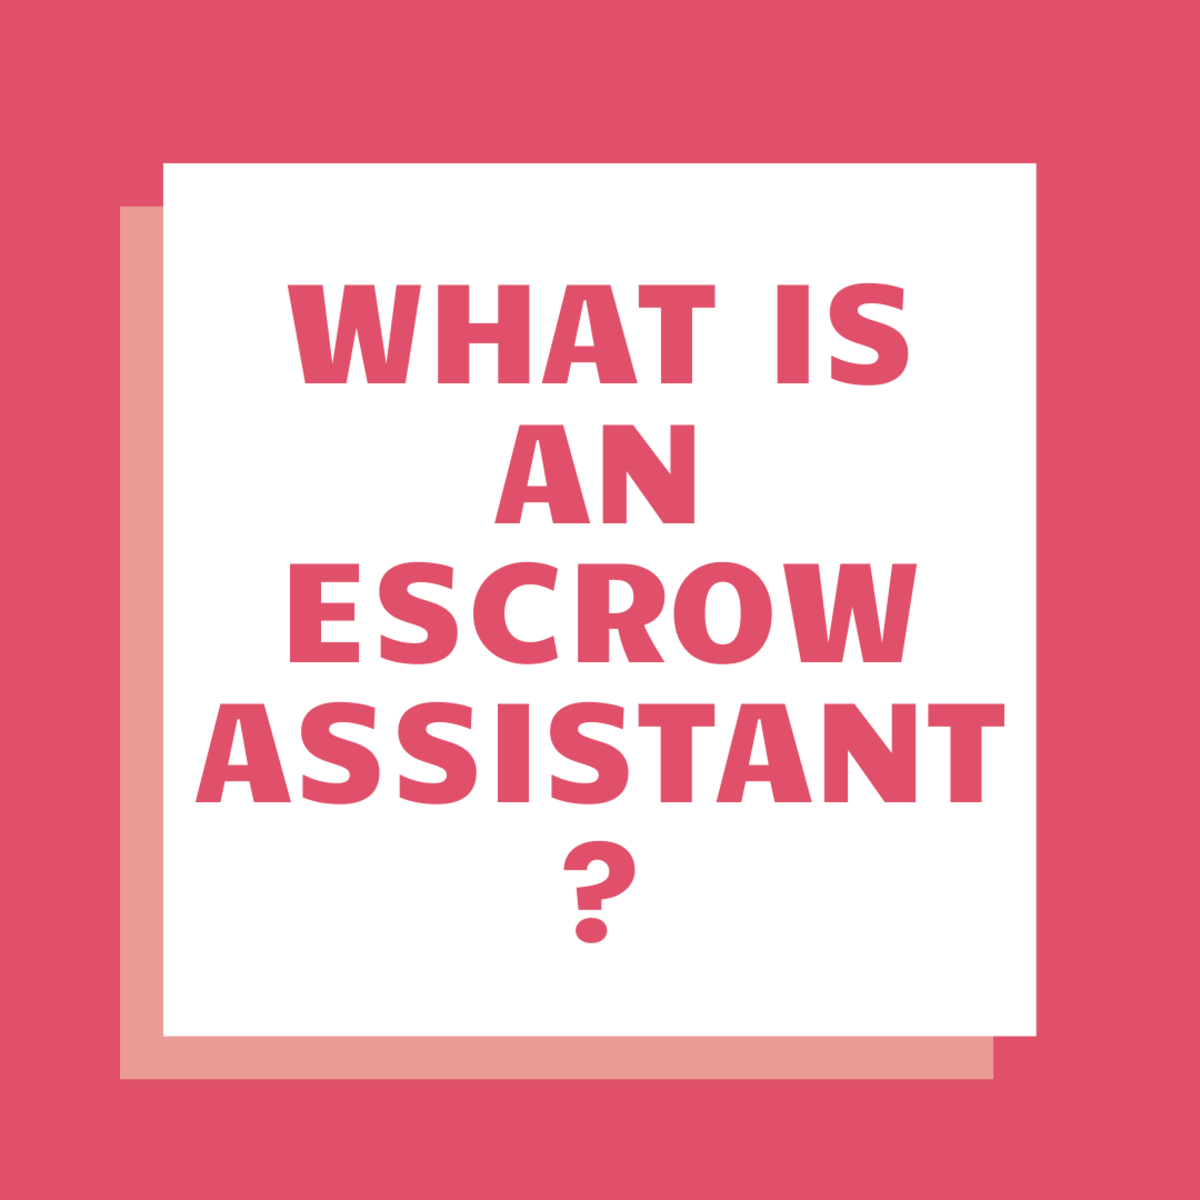 Learn all about what an escrow assistant is and what the job description entails!